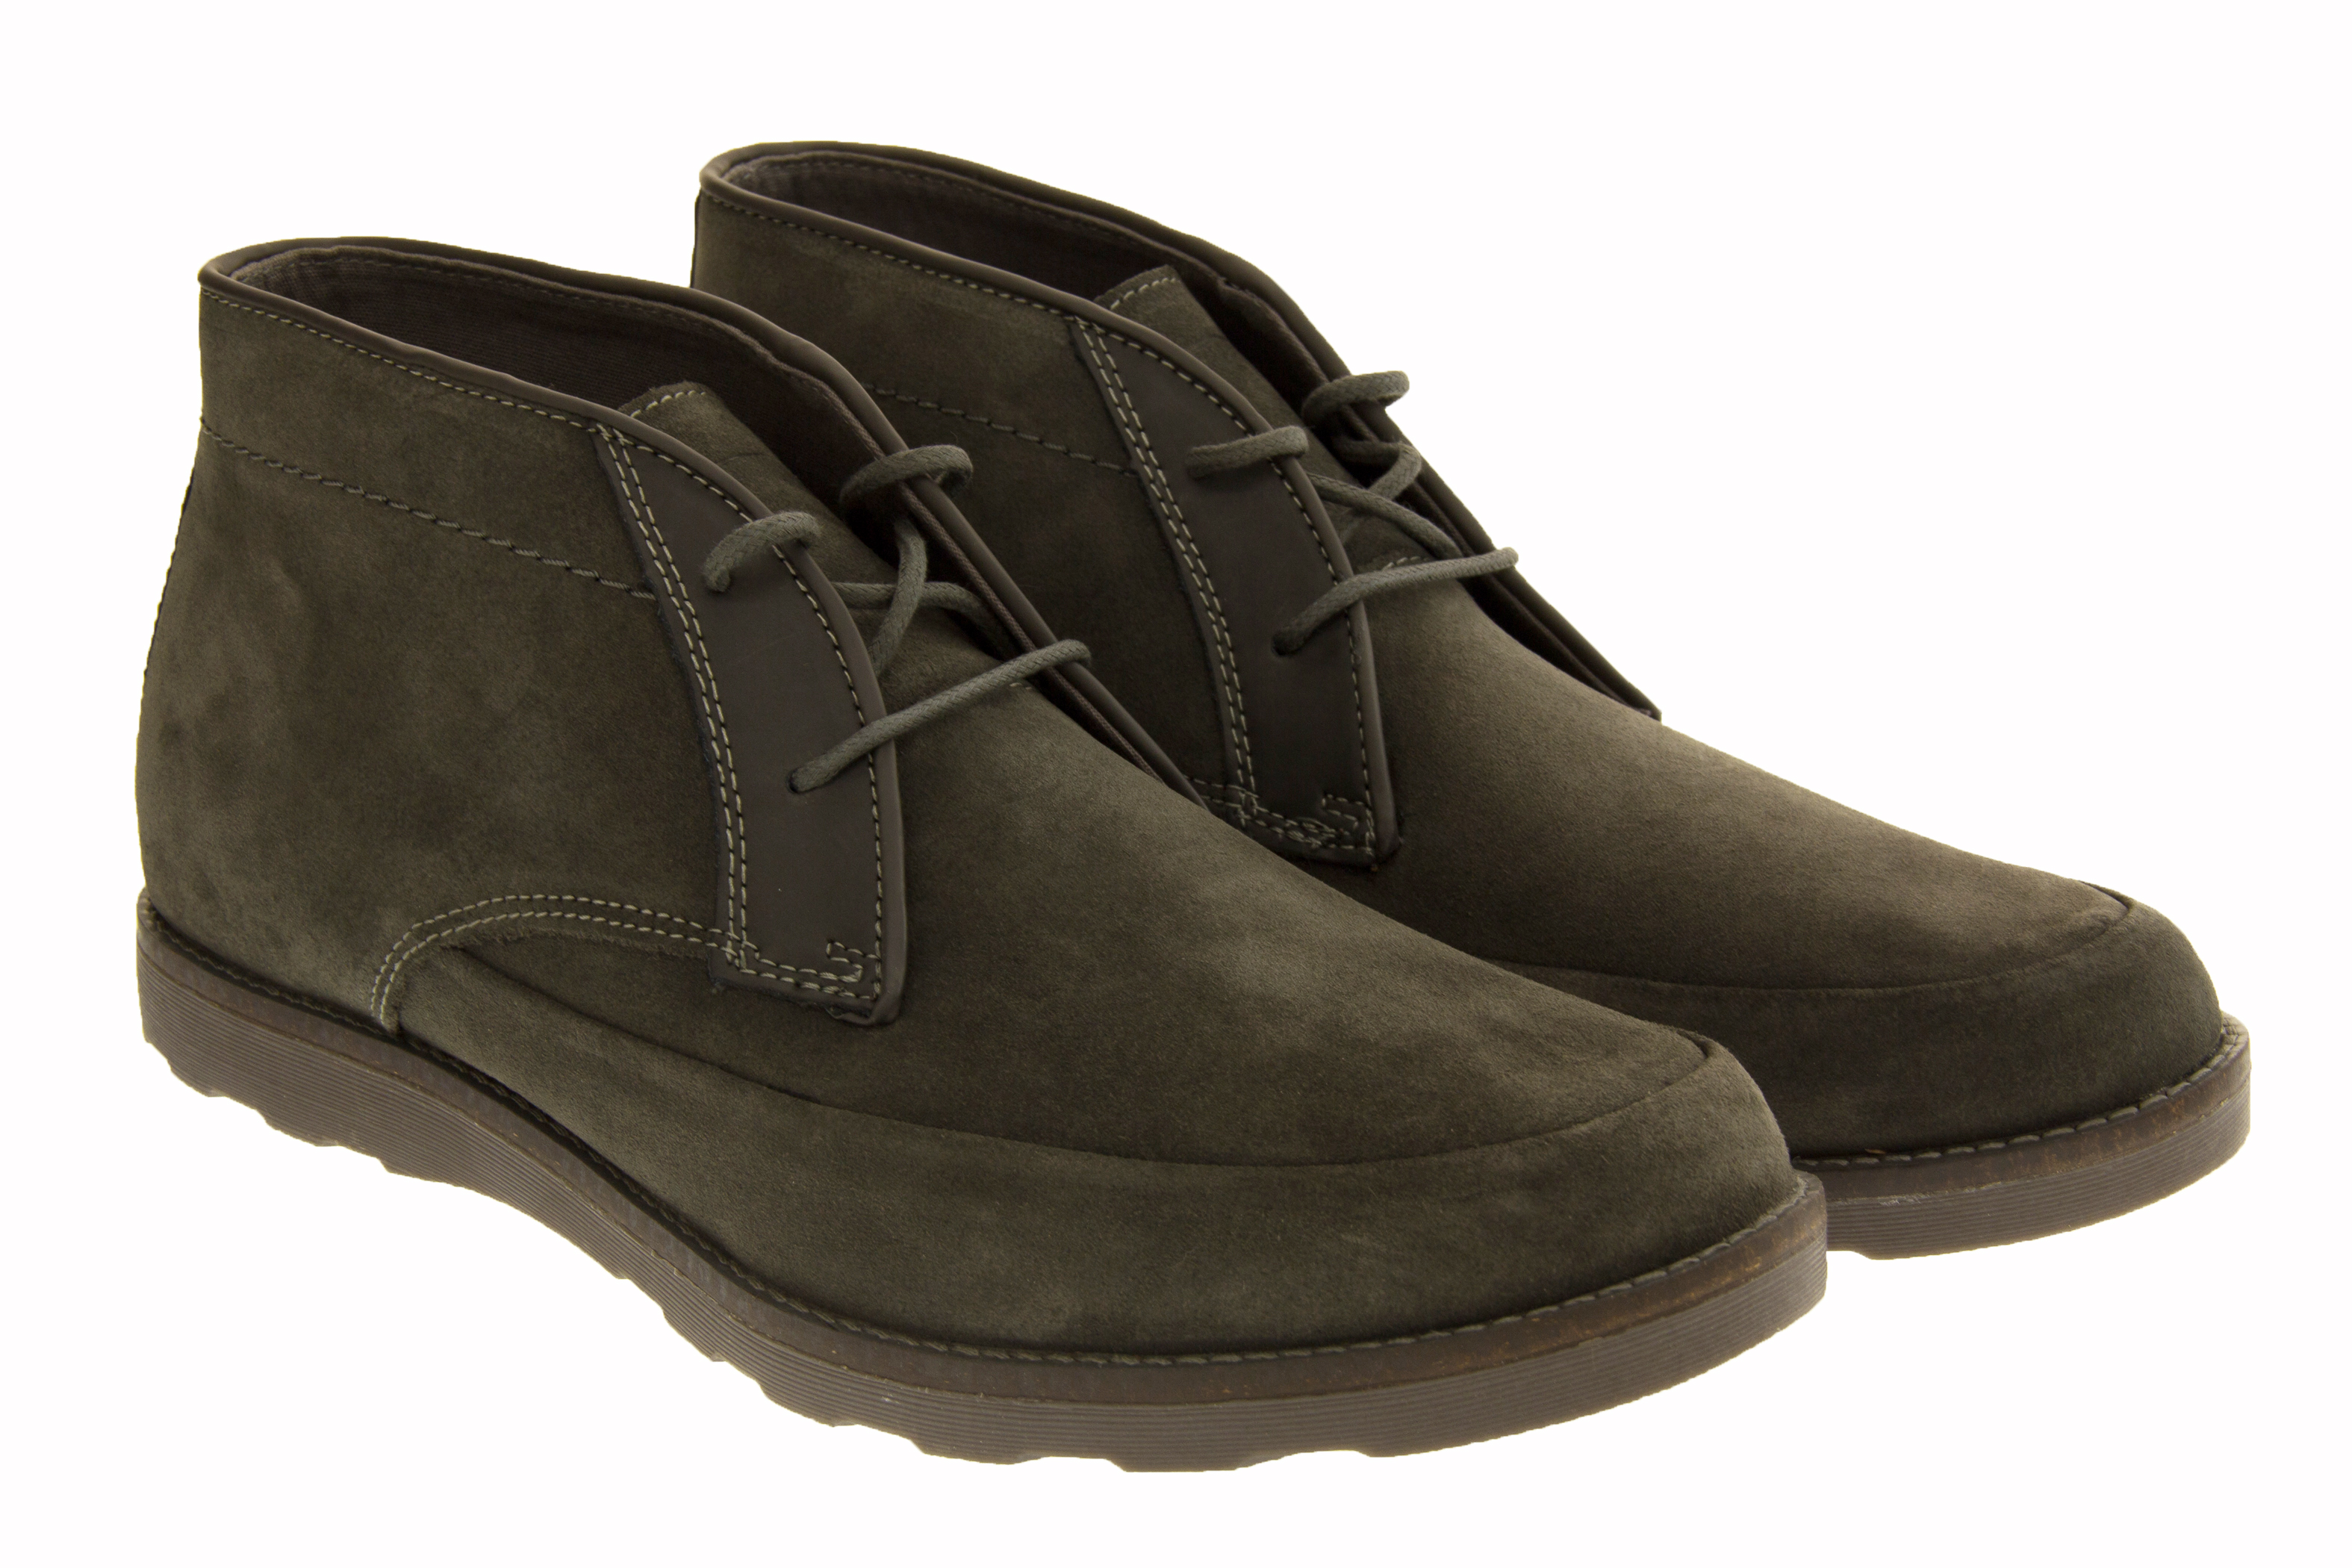 mens skechers real suede boots casual lace up leather